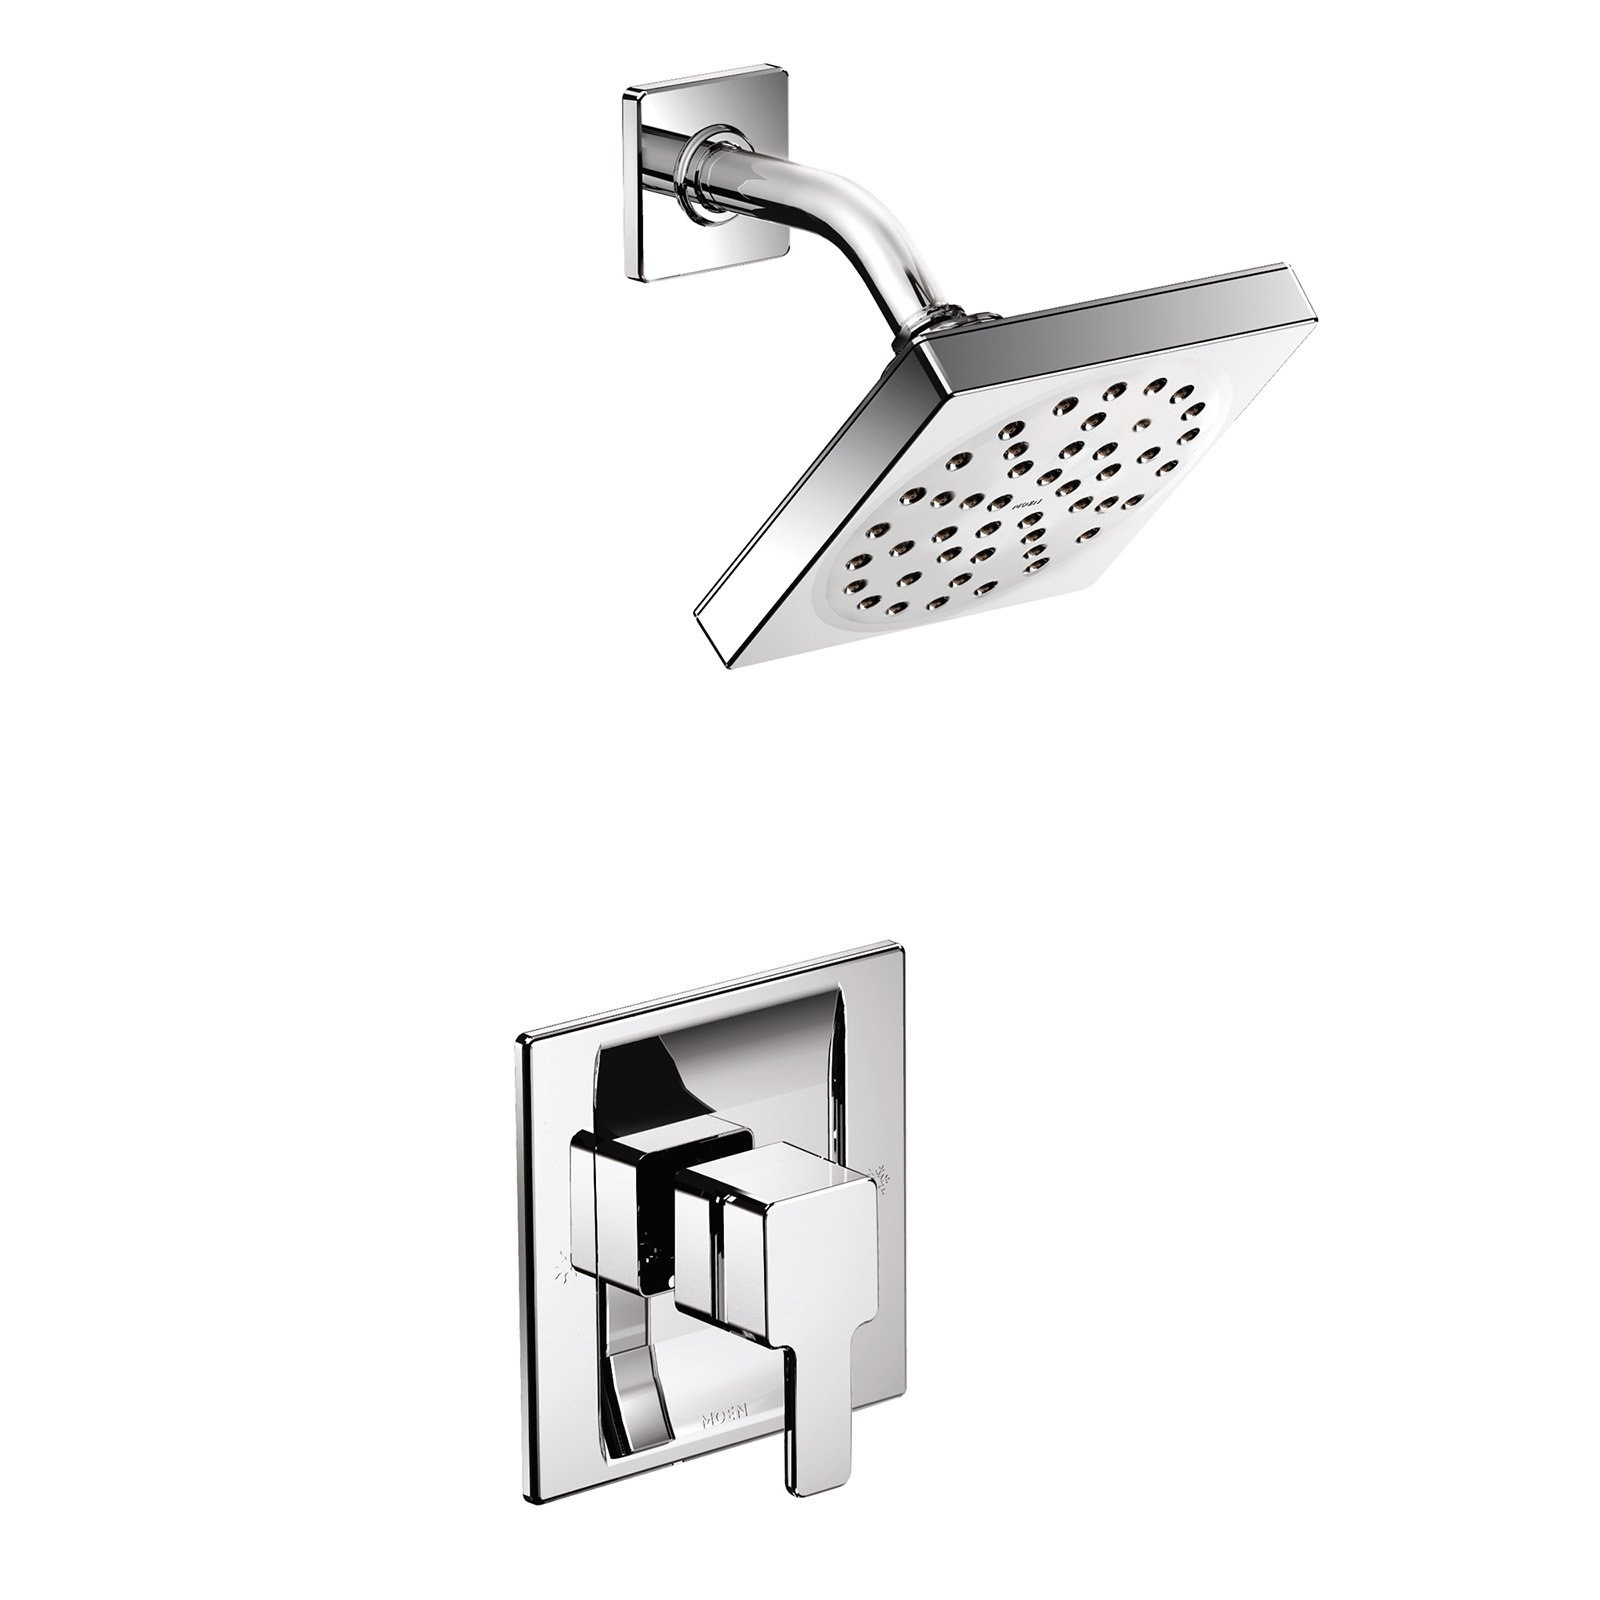 Moen 90 Degree TS2712 Posi-Temp Shower Faucet with Optional Valve by